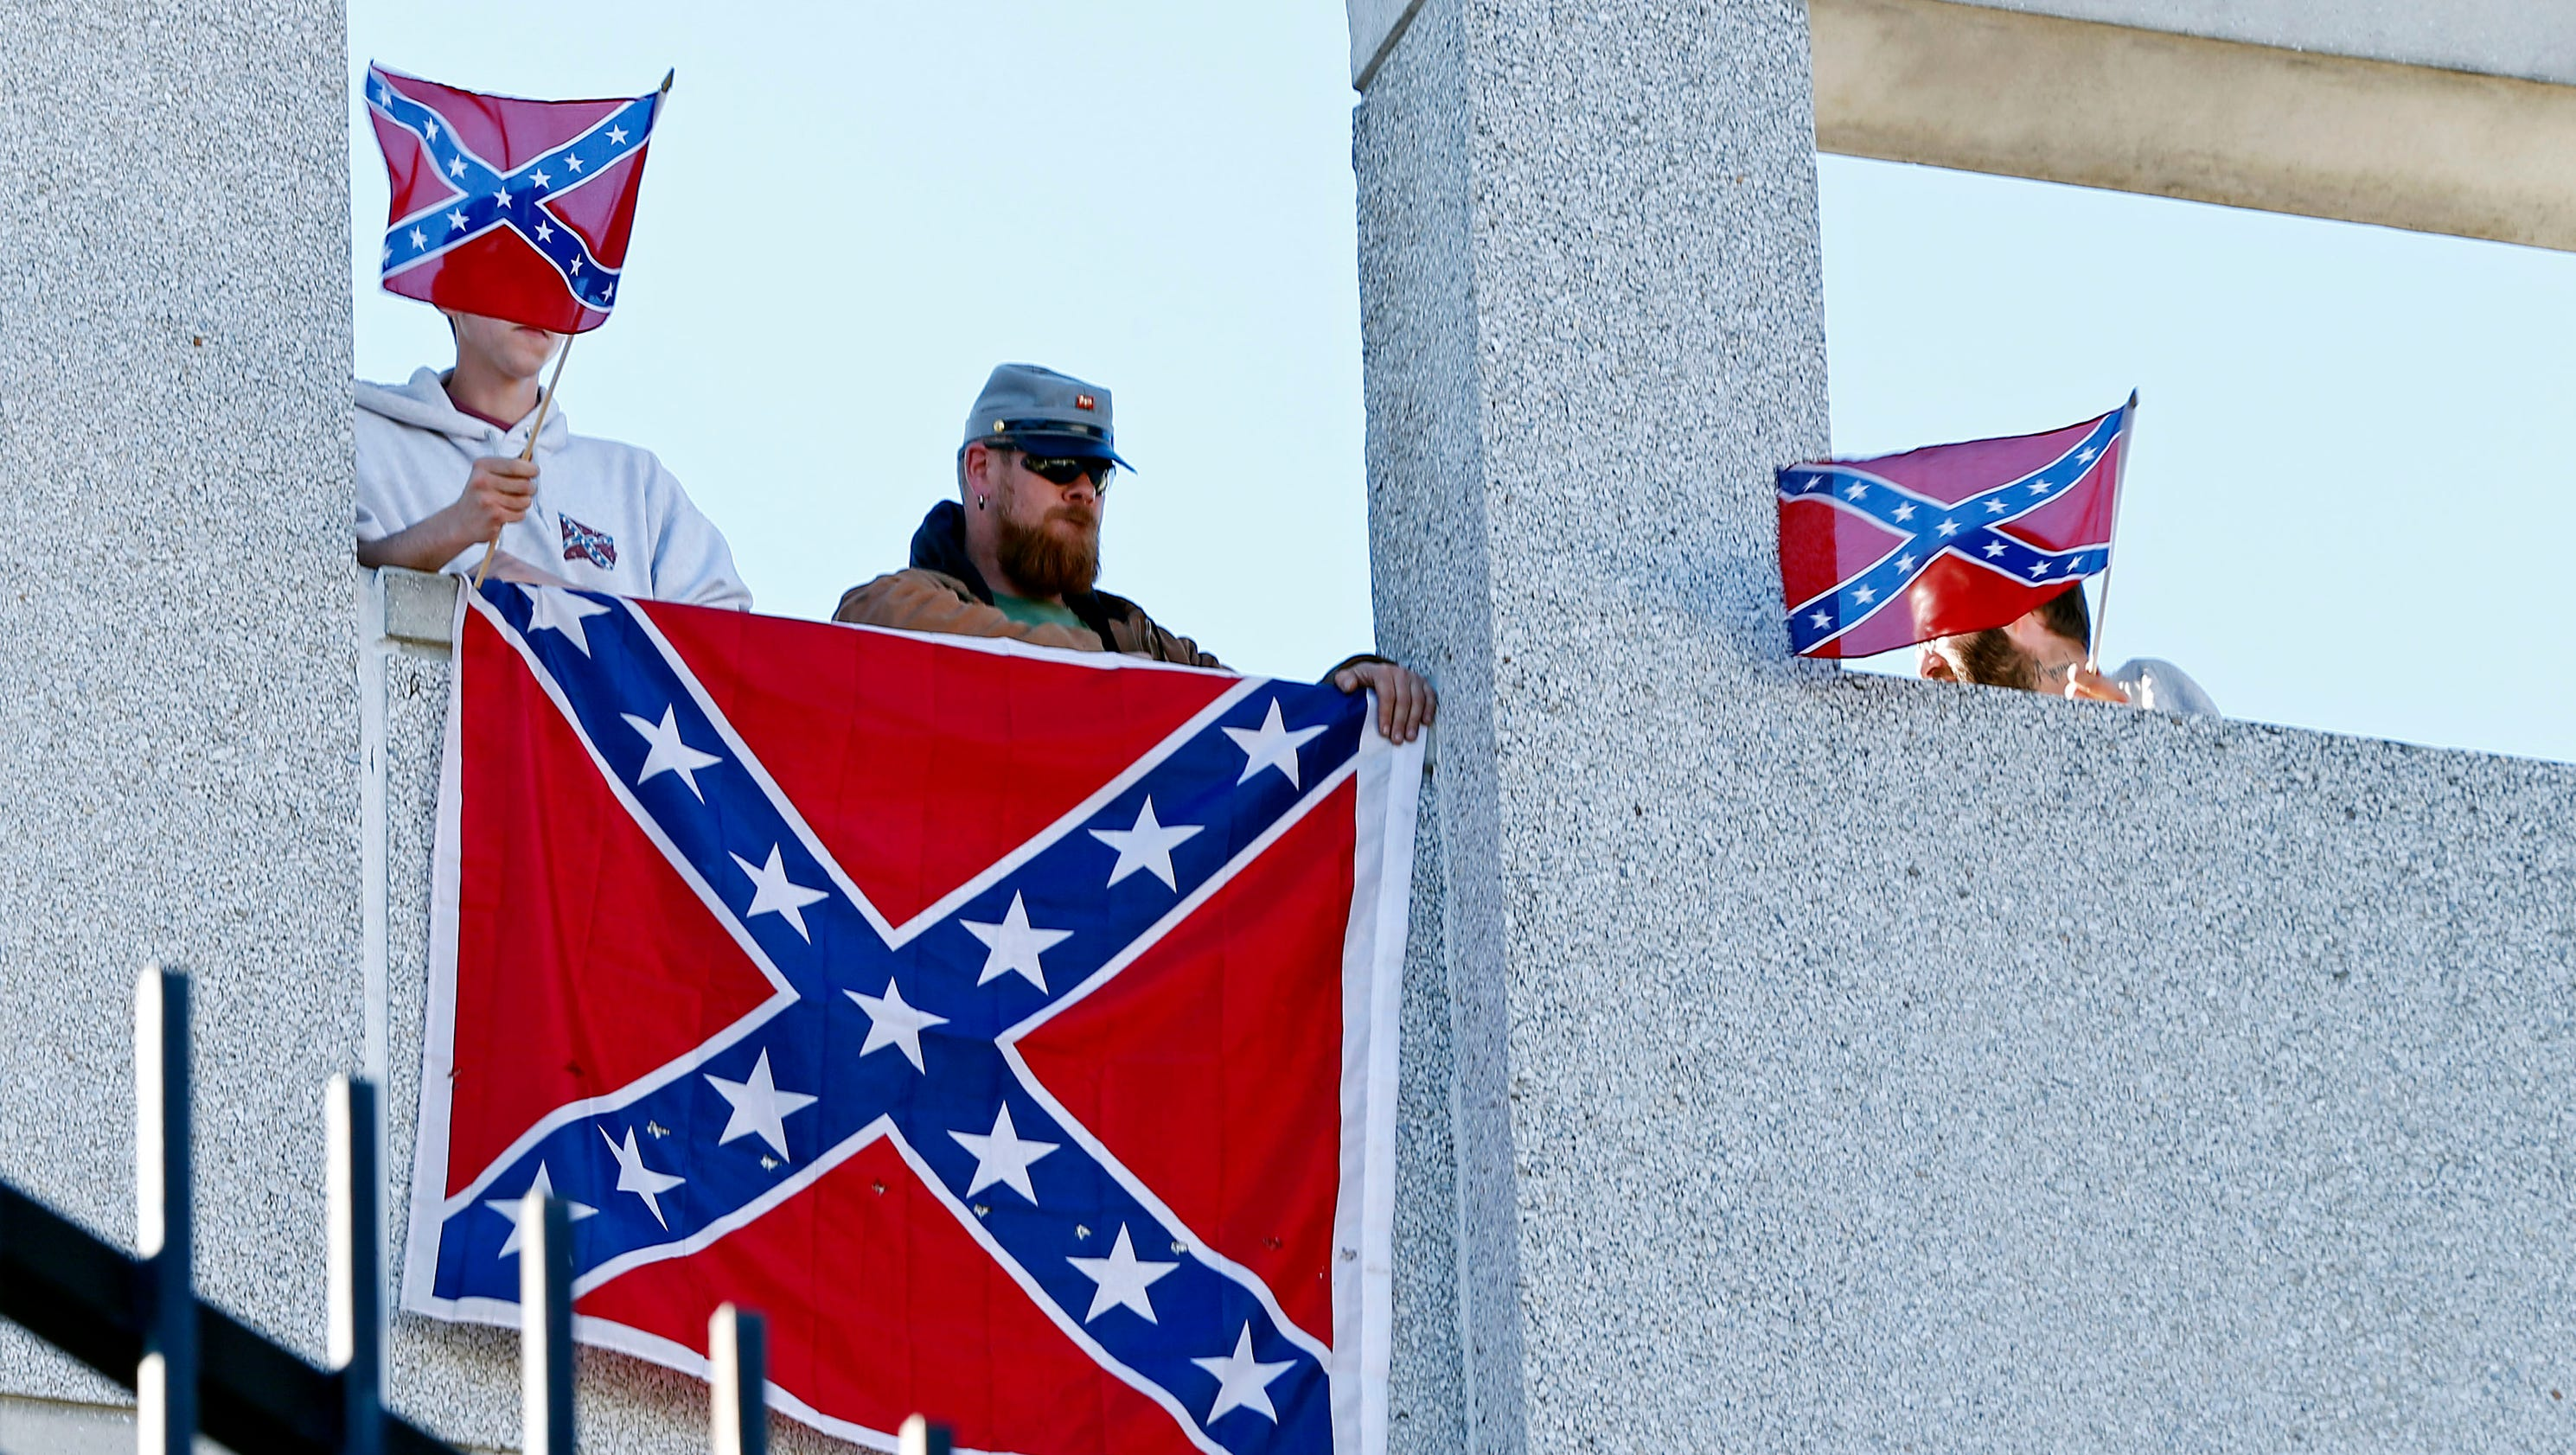 confederate flag in south carolina essay South carolina raised the confederate flag above their state house a short time  after the sentence the brief time period between the two events led many to.